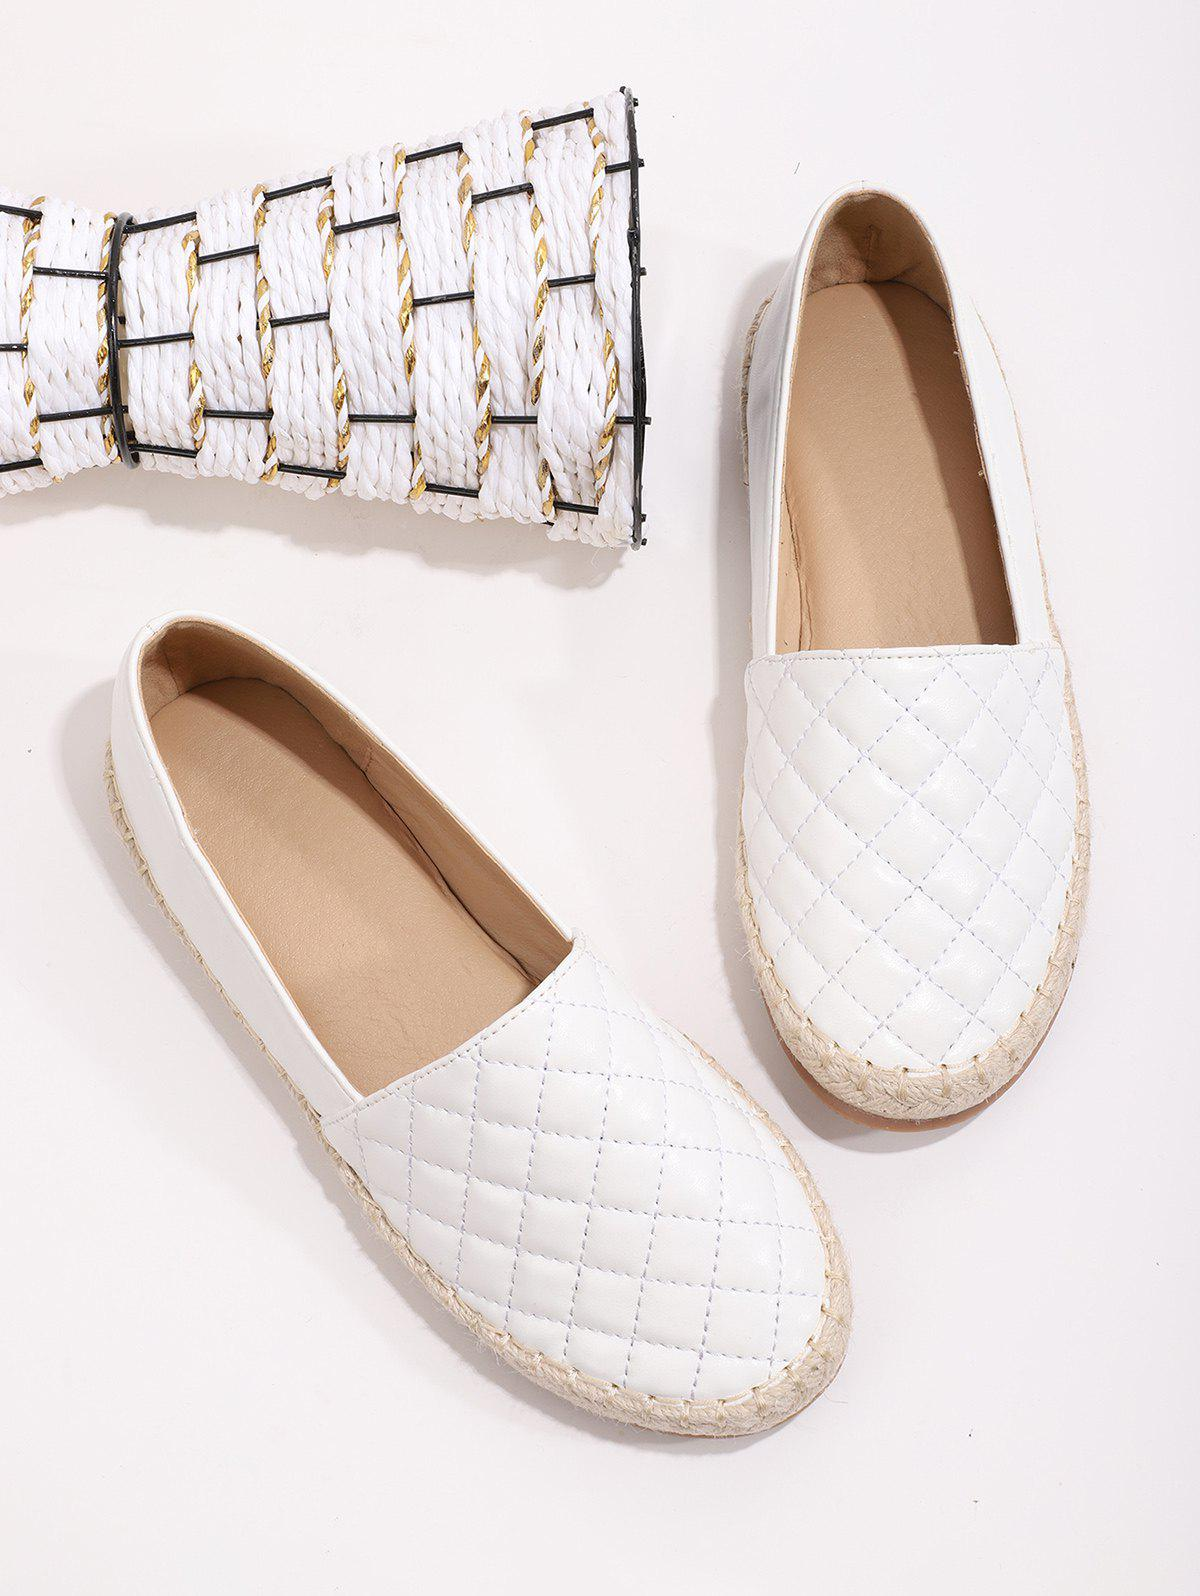 Quilted Leather Espadrilles Loafer Flat Shoes - WHITE EU 41